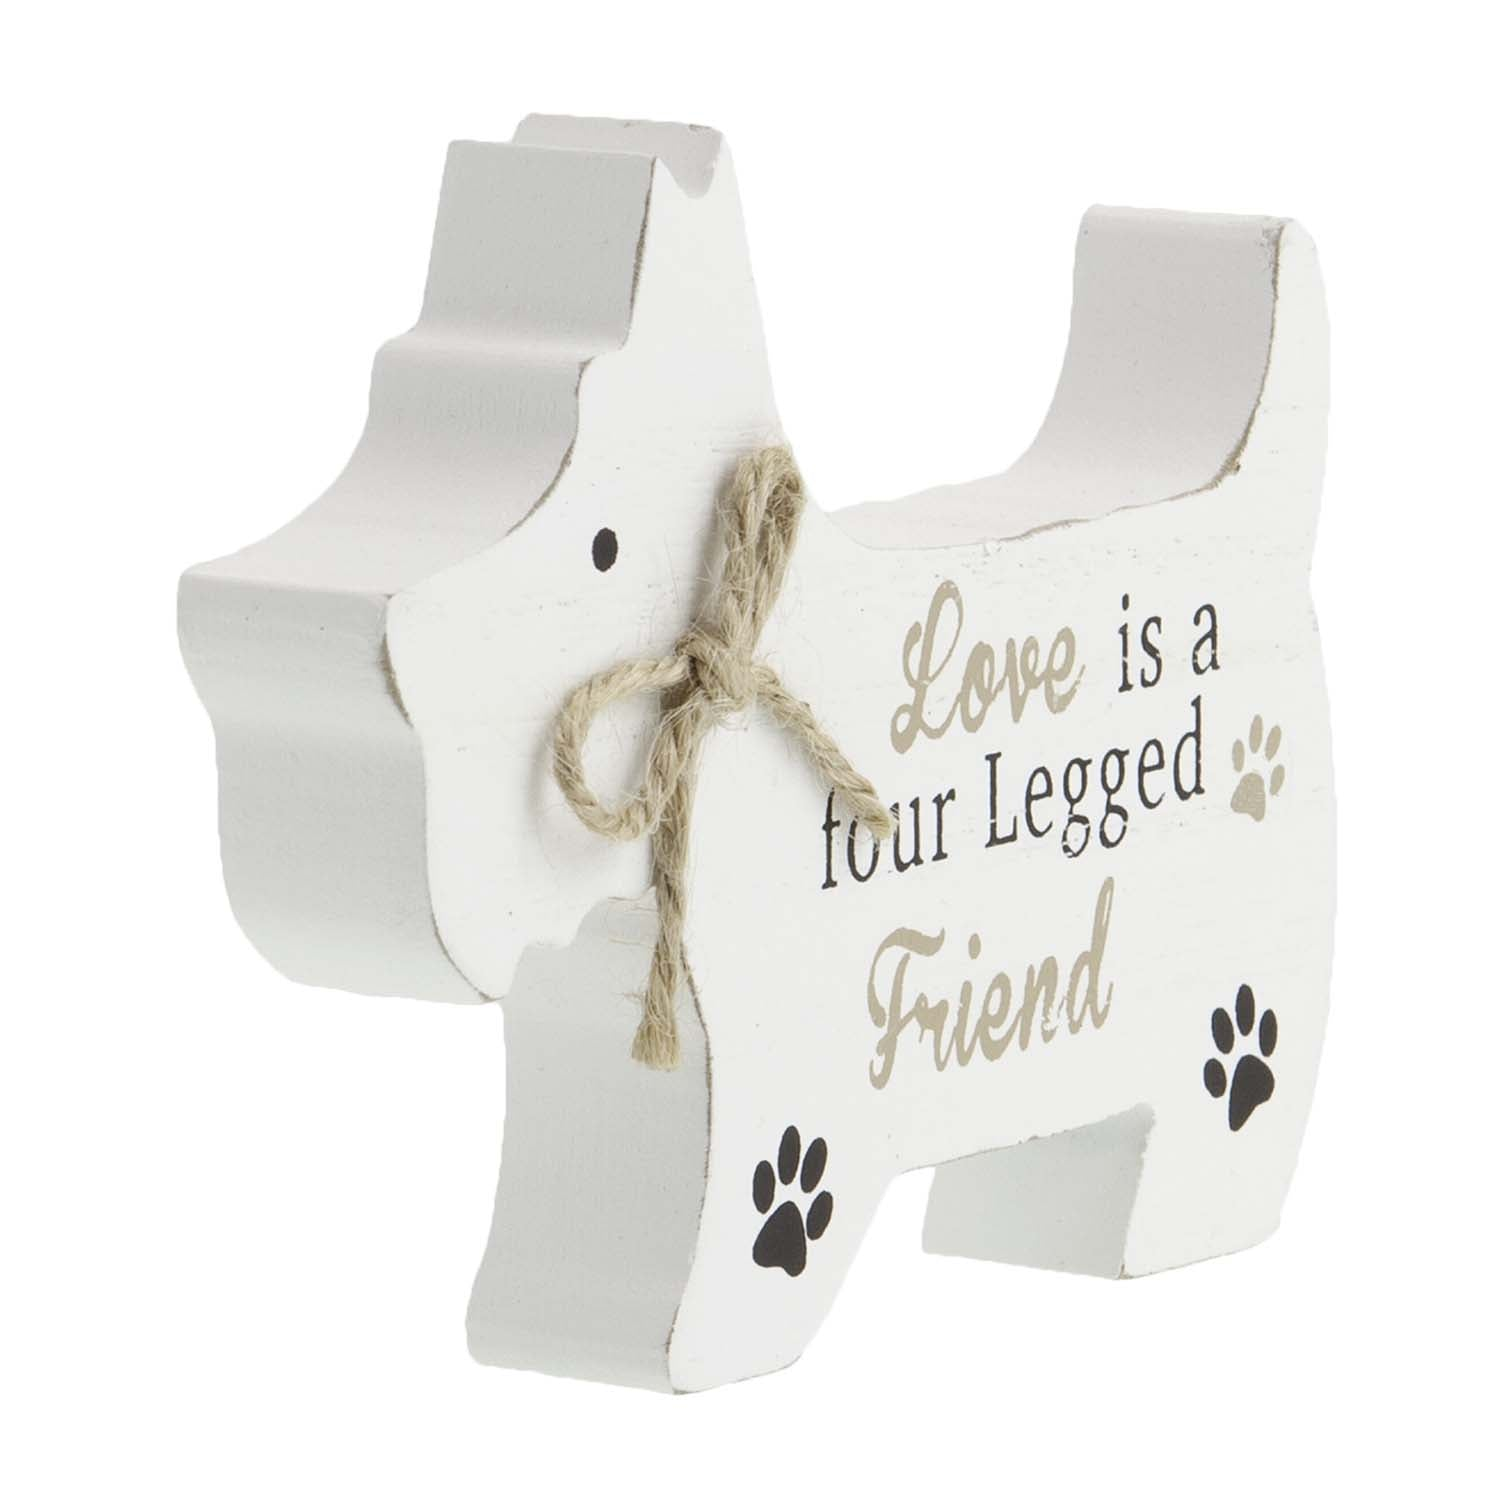 Dog Lover Gifts available at Dog Krazy Gifts – Westie Standing Dog Sign, Love is a Four Legged Friend, Just Part Of Our Collection Of Signs Available At www.dogkrazygifts.co.uk